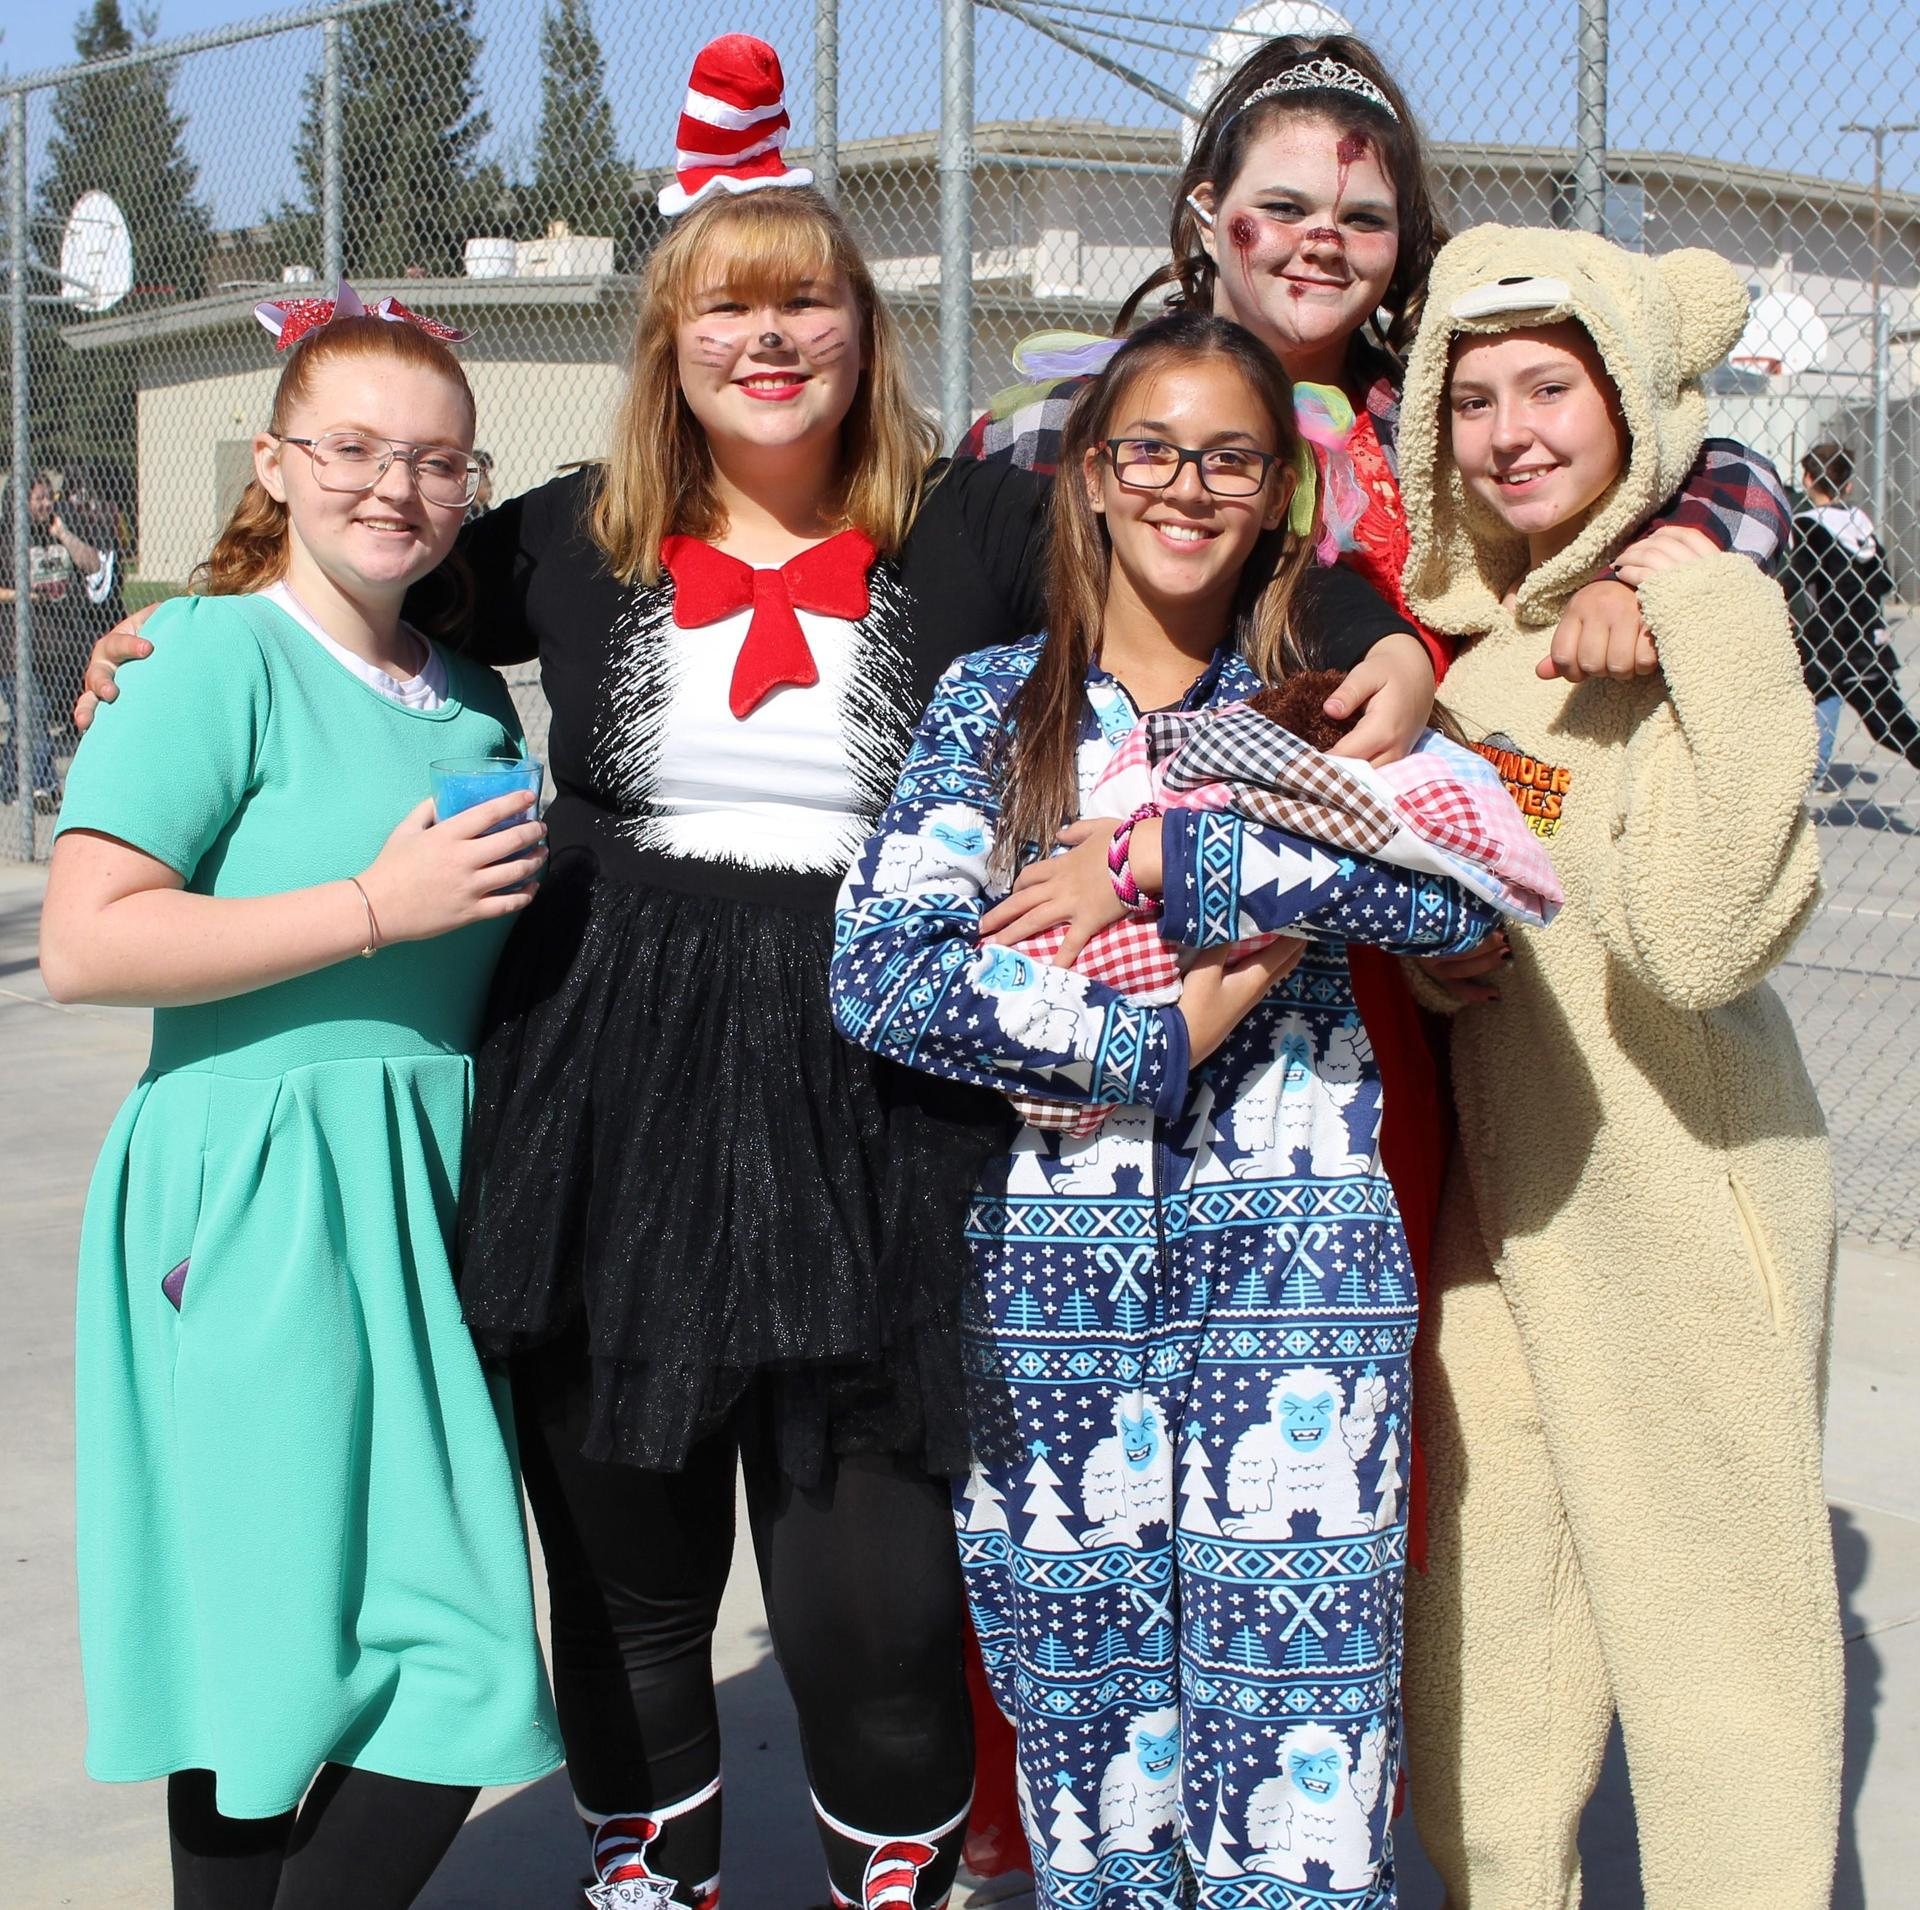 Morgan Penamente , Annie Jackson as cat in the hat, Sierra Godwin as a little girl, Hannah Medeiros as a zombie, and Lillien Dering as ted